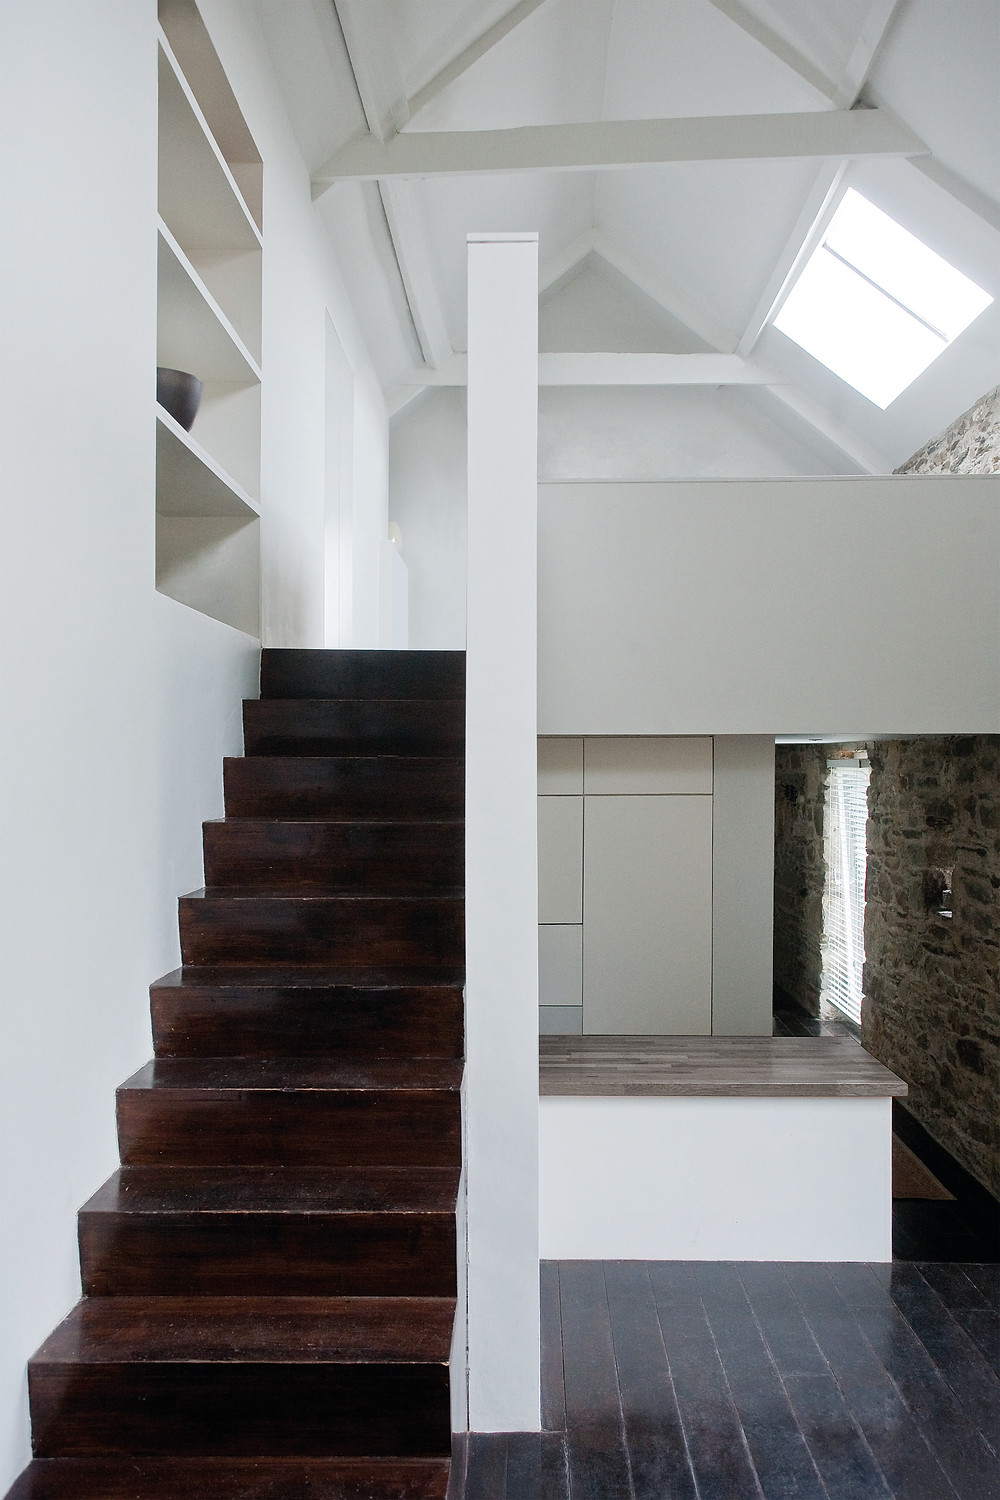 HOUSE 5 PROJECT FEATURES BALLILOUGE BARN